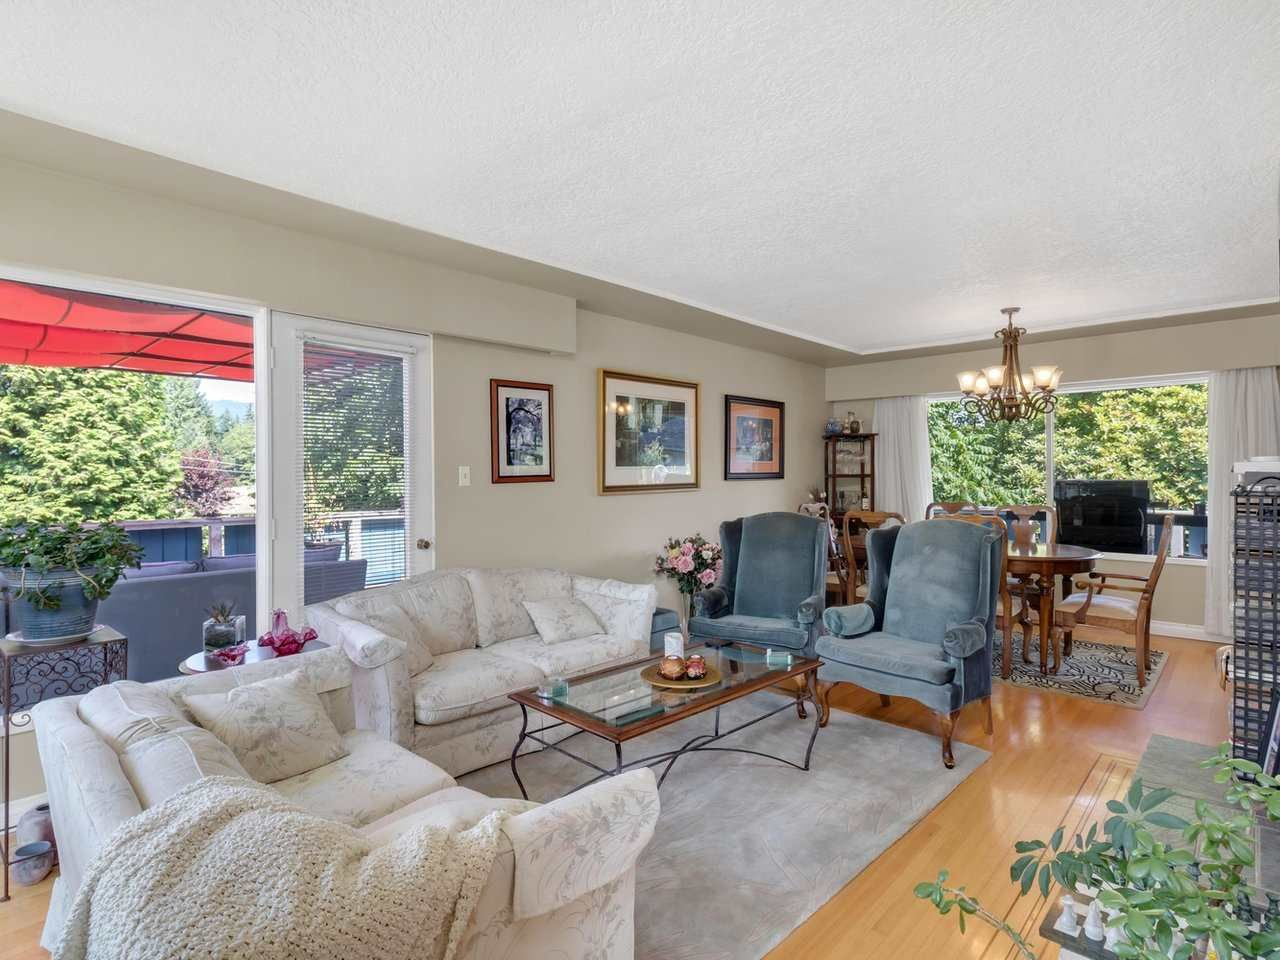 Photo 3: Photos: 943 GATENSBURY Street in Coquitlam: Harbour Chines House for sale : MLS®# R2499202